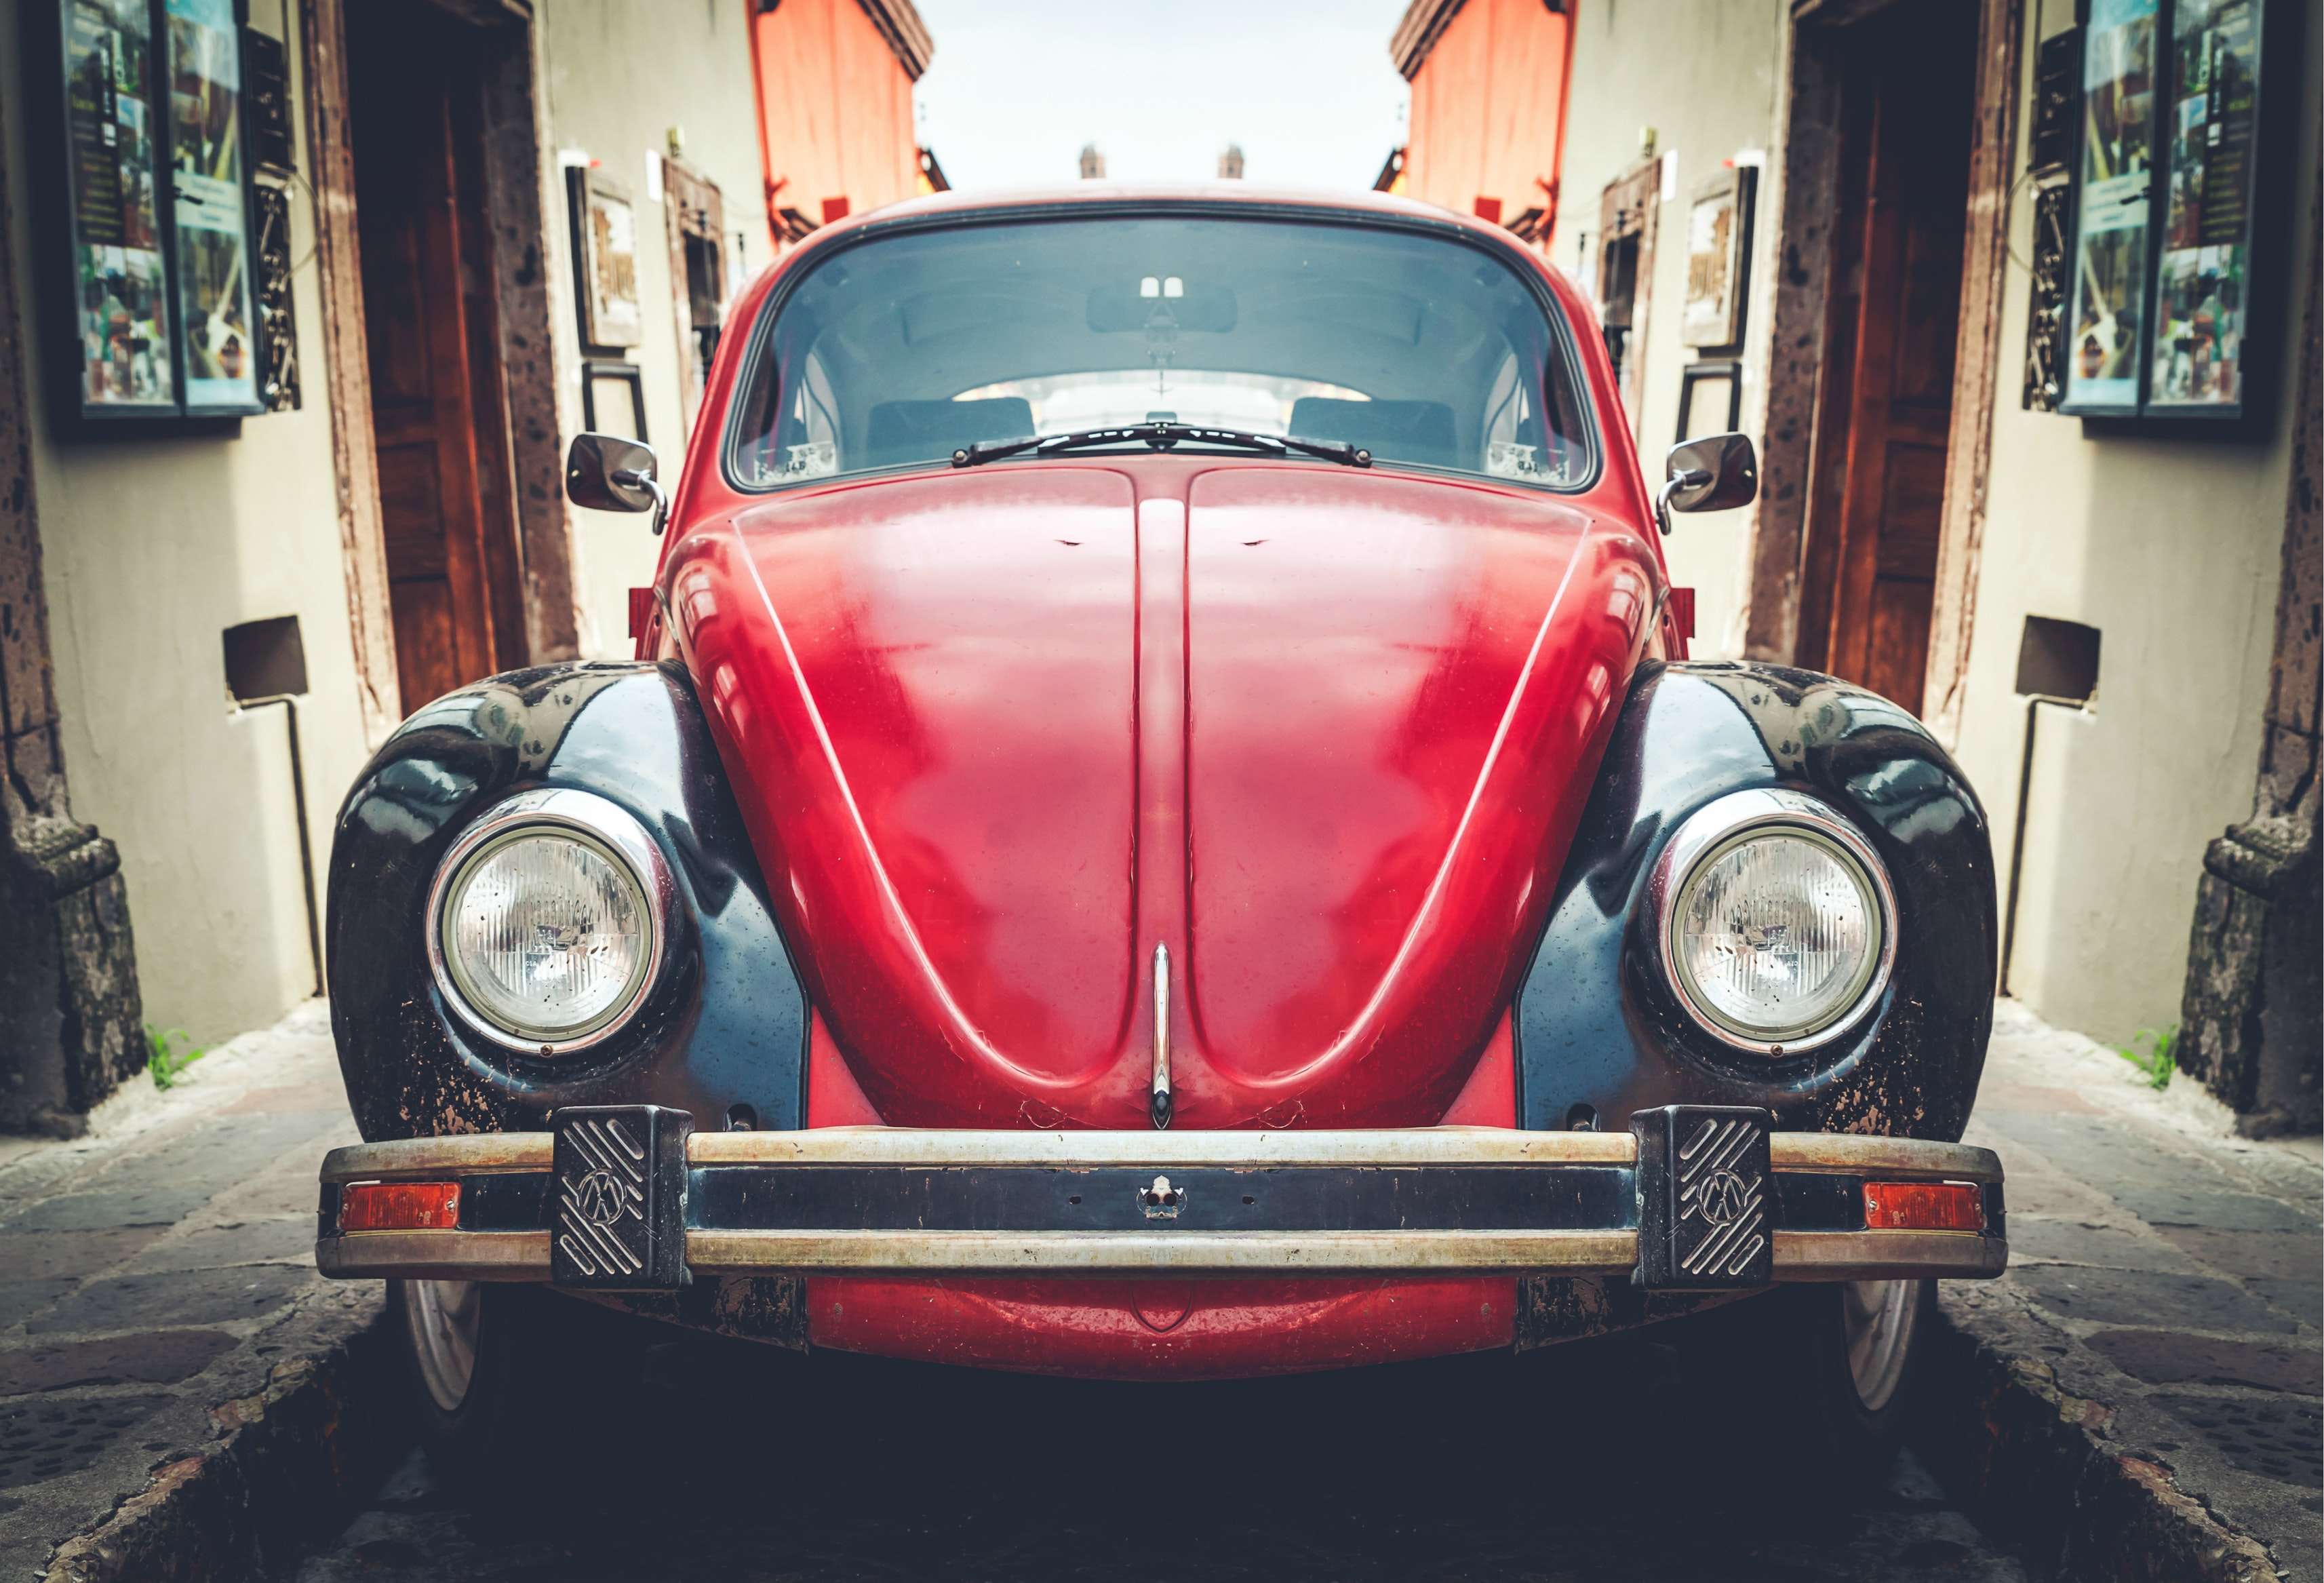 Front of the old vintage Volkswagen beetle in the narrow painting decorated street in San Miguel de Allende